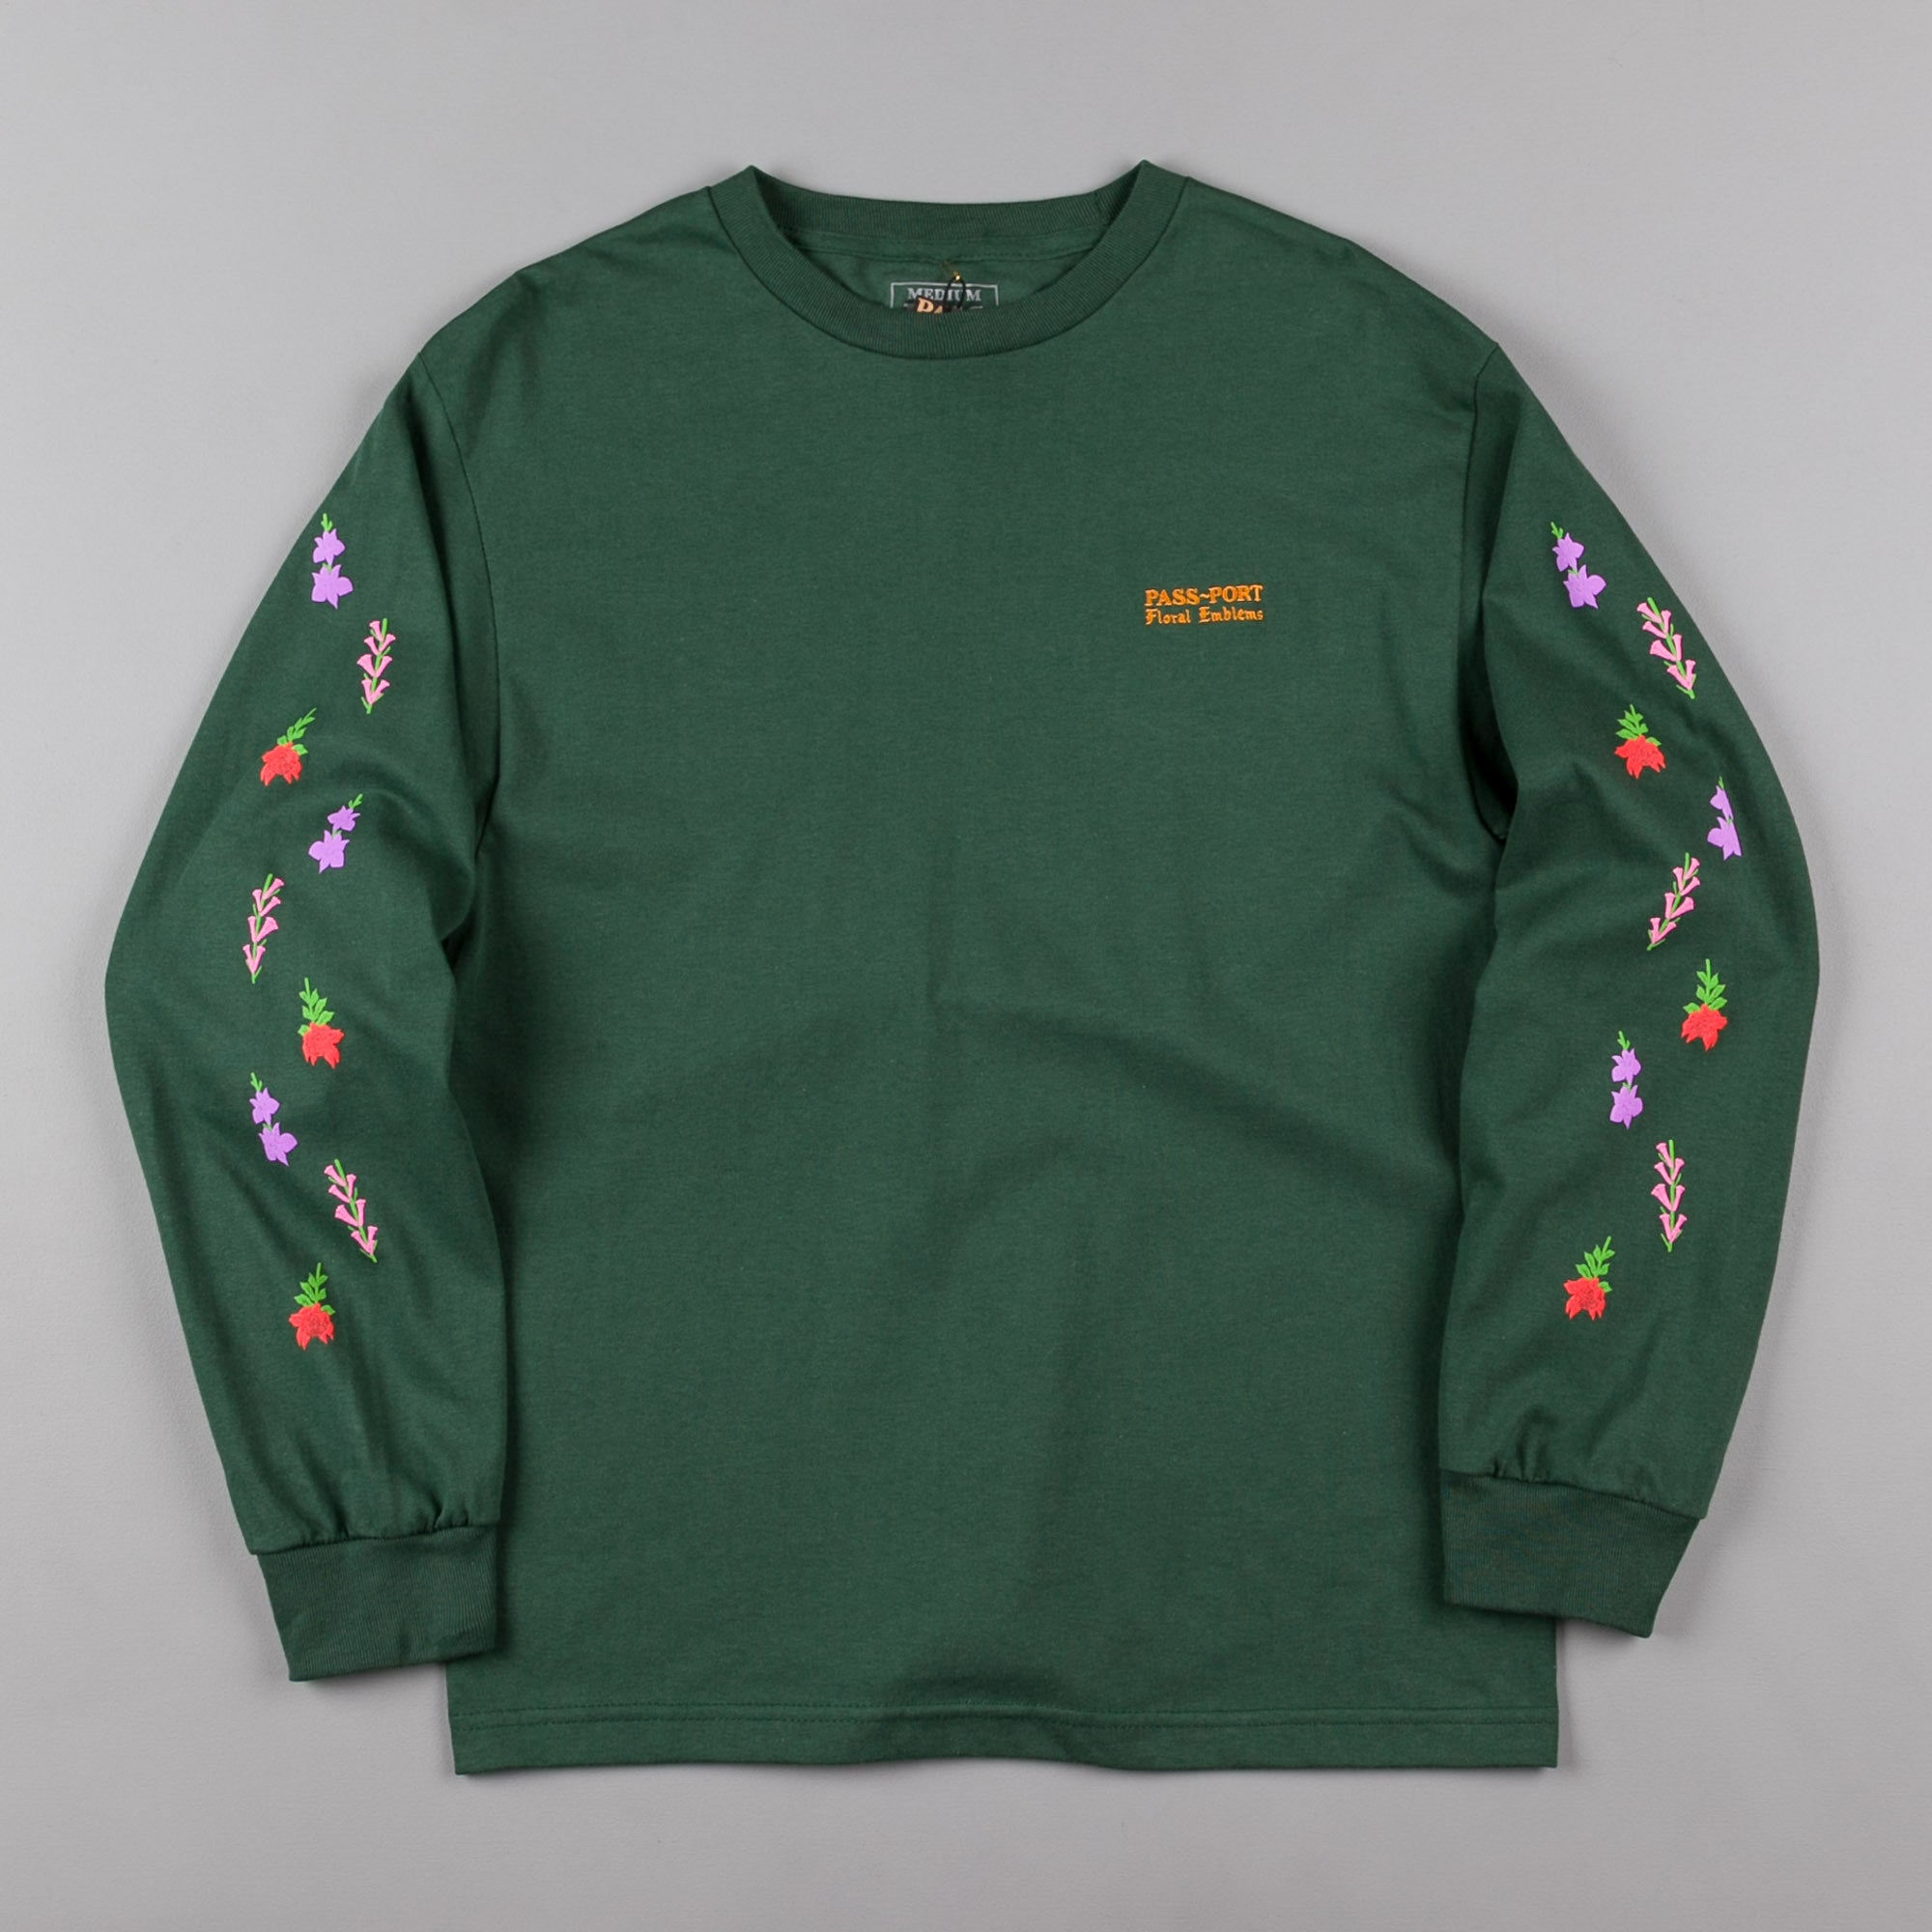 Pass Port Floral Emblems Long Sleeve T-Shirt - Forest Green